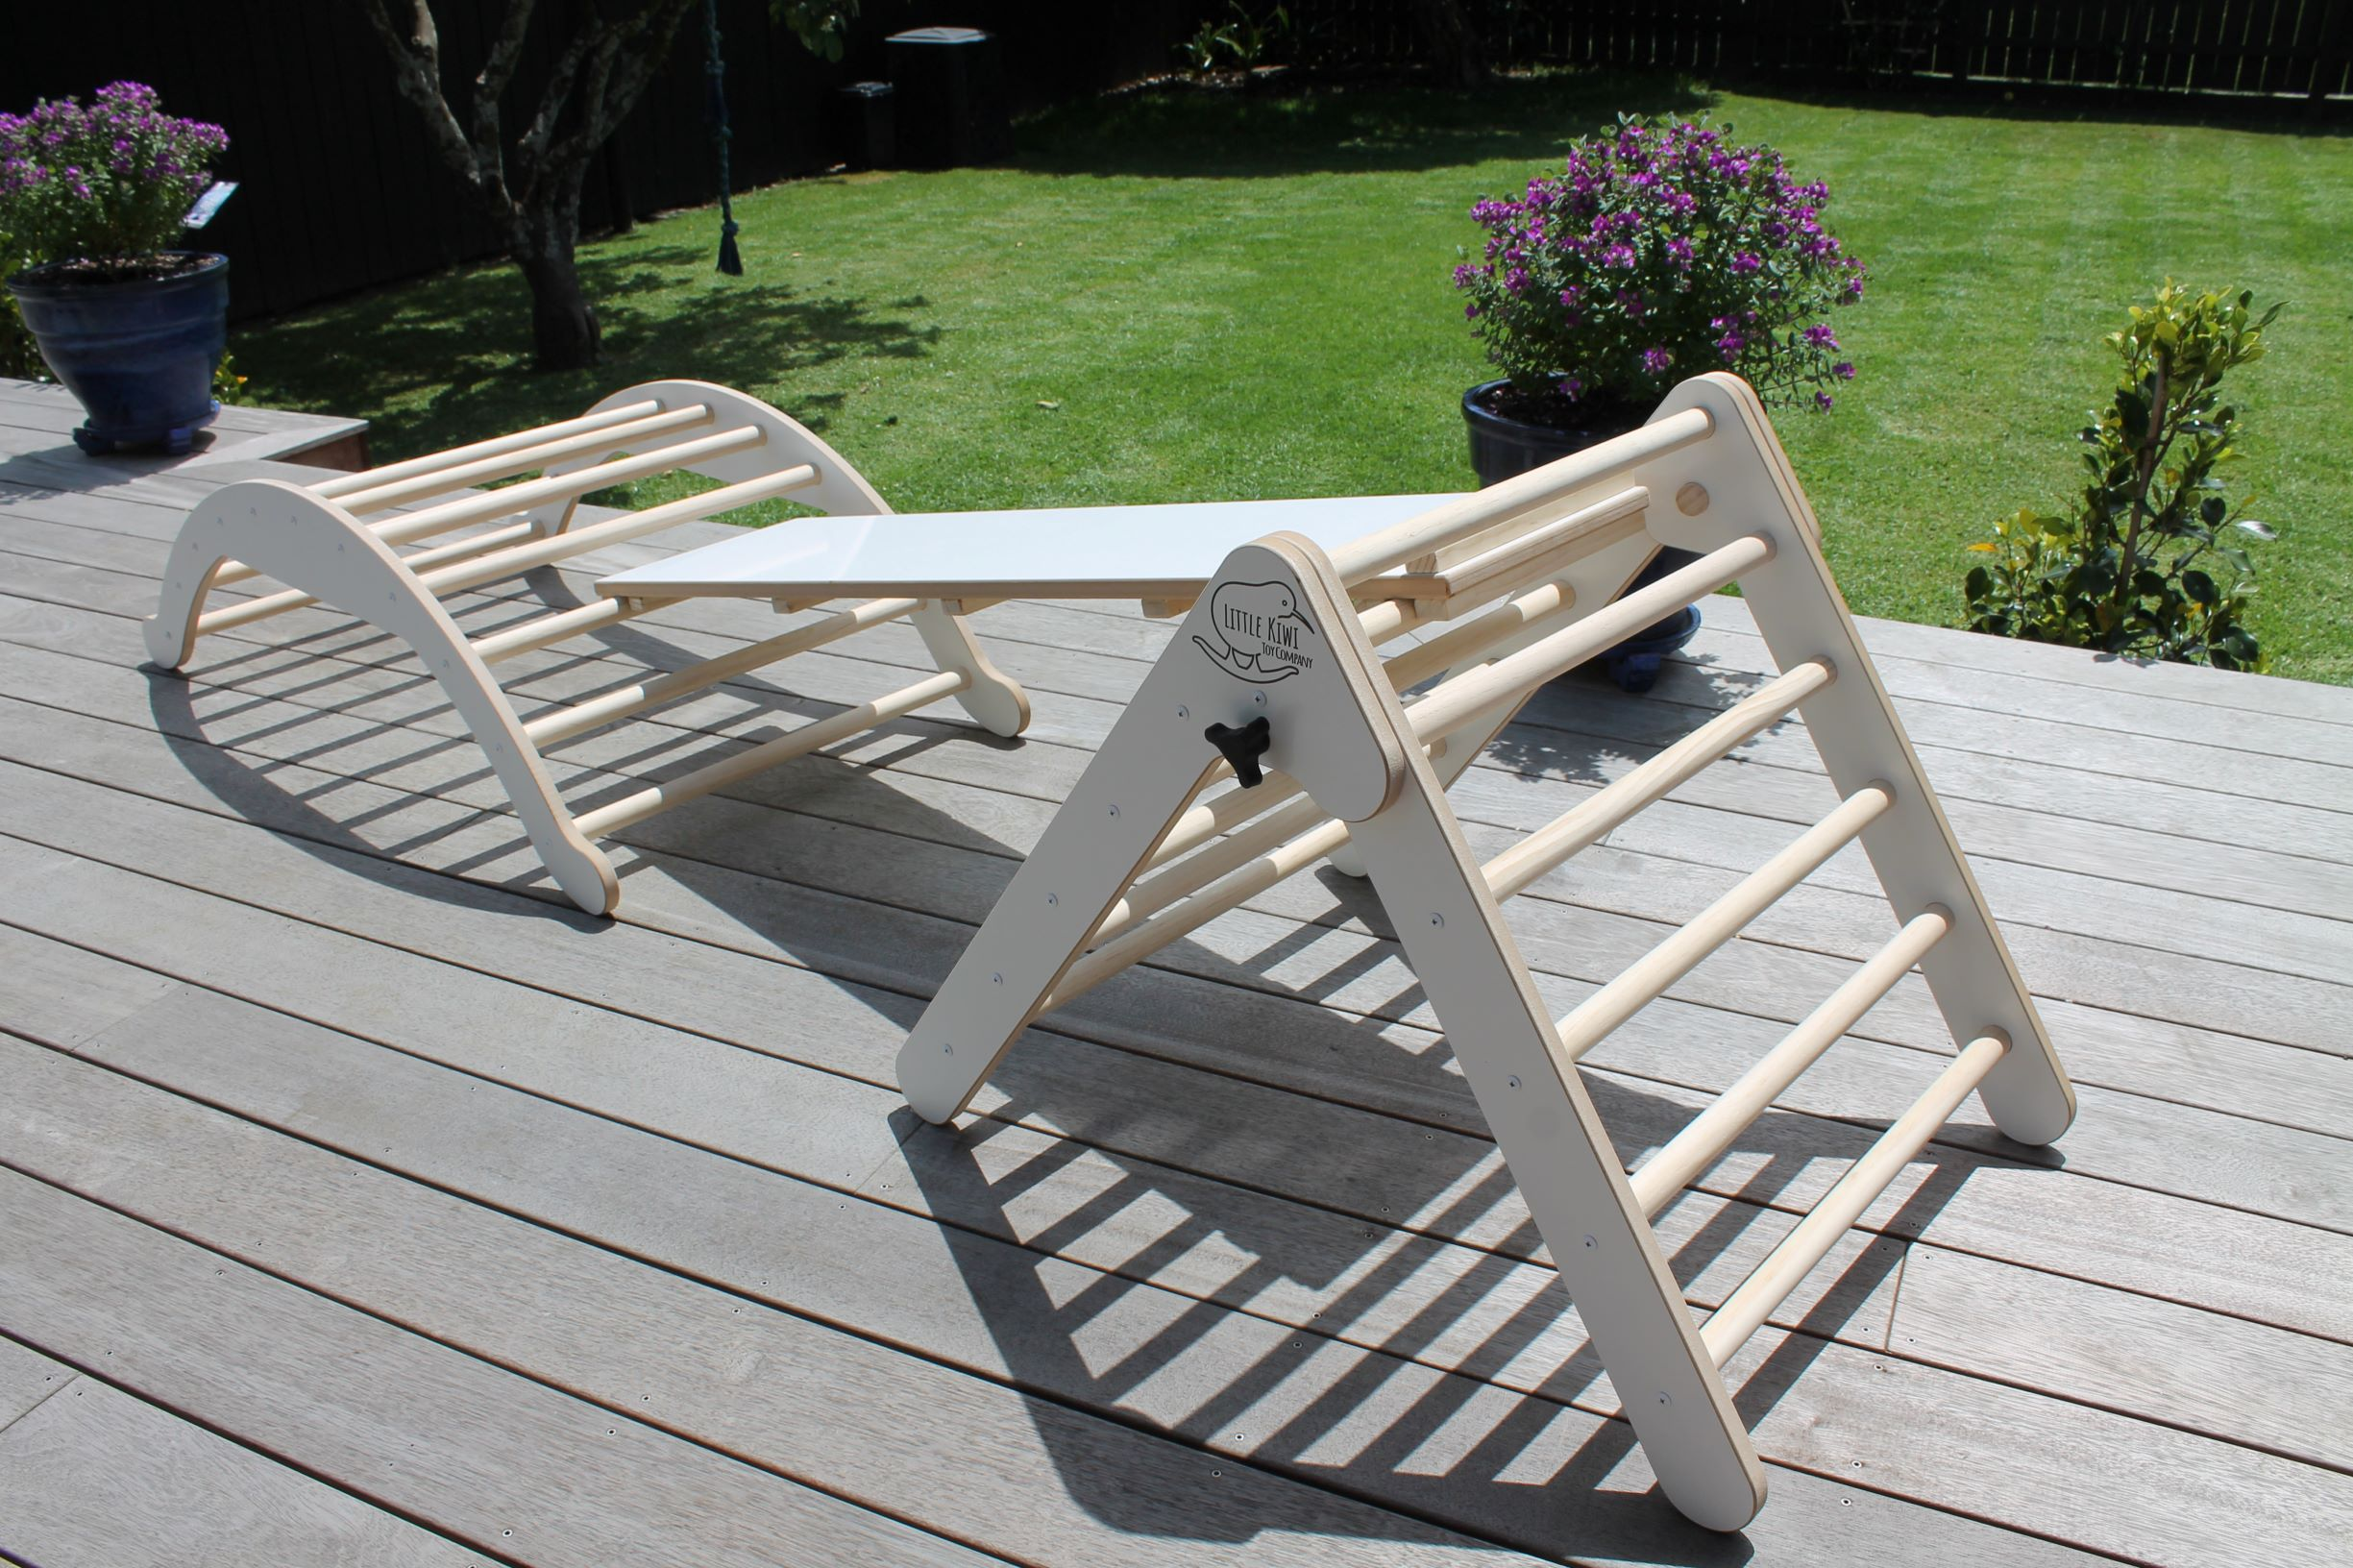 Little Kiwi Pikler Triangle, Arch and Climbing Ramp Combo -White via @chooicenz